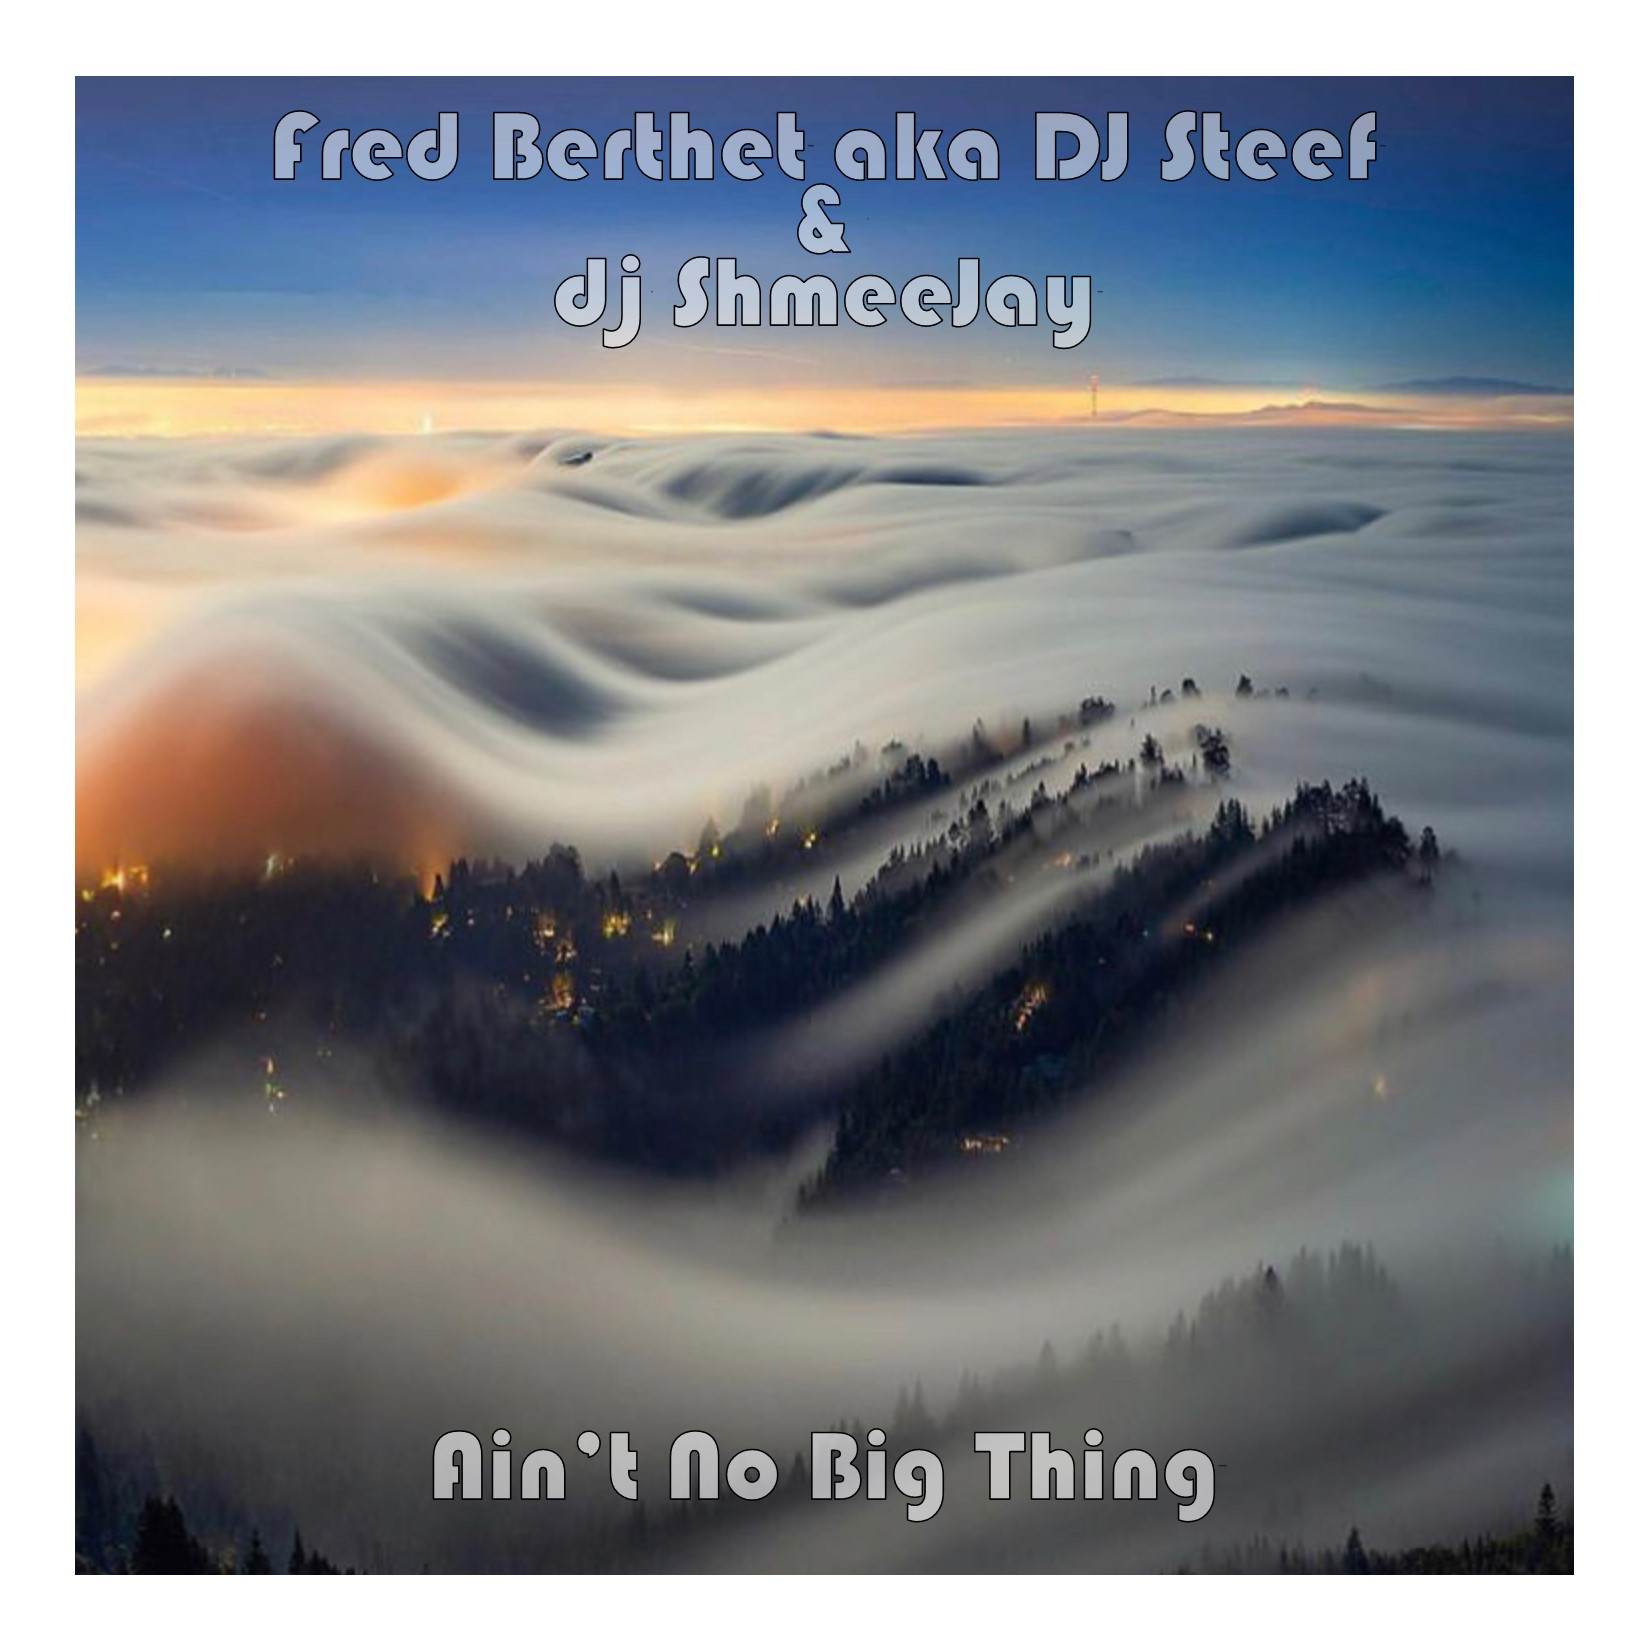 fred berthet_ain't no big thing-freq2